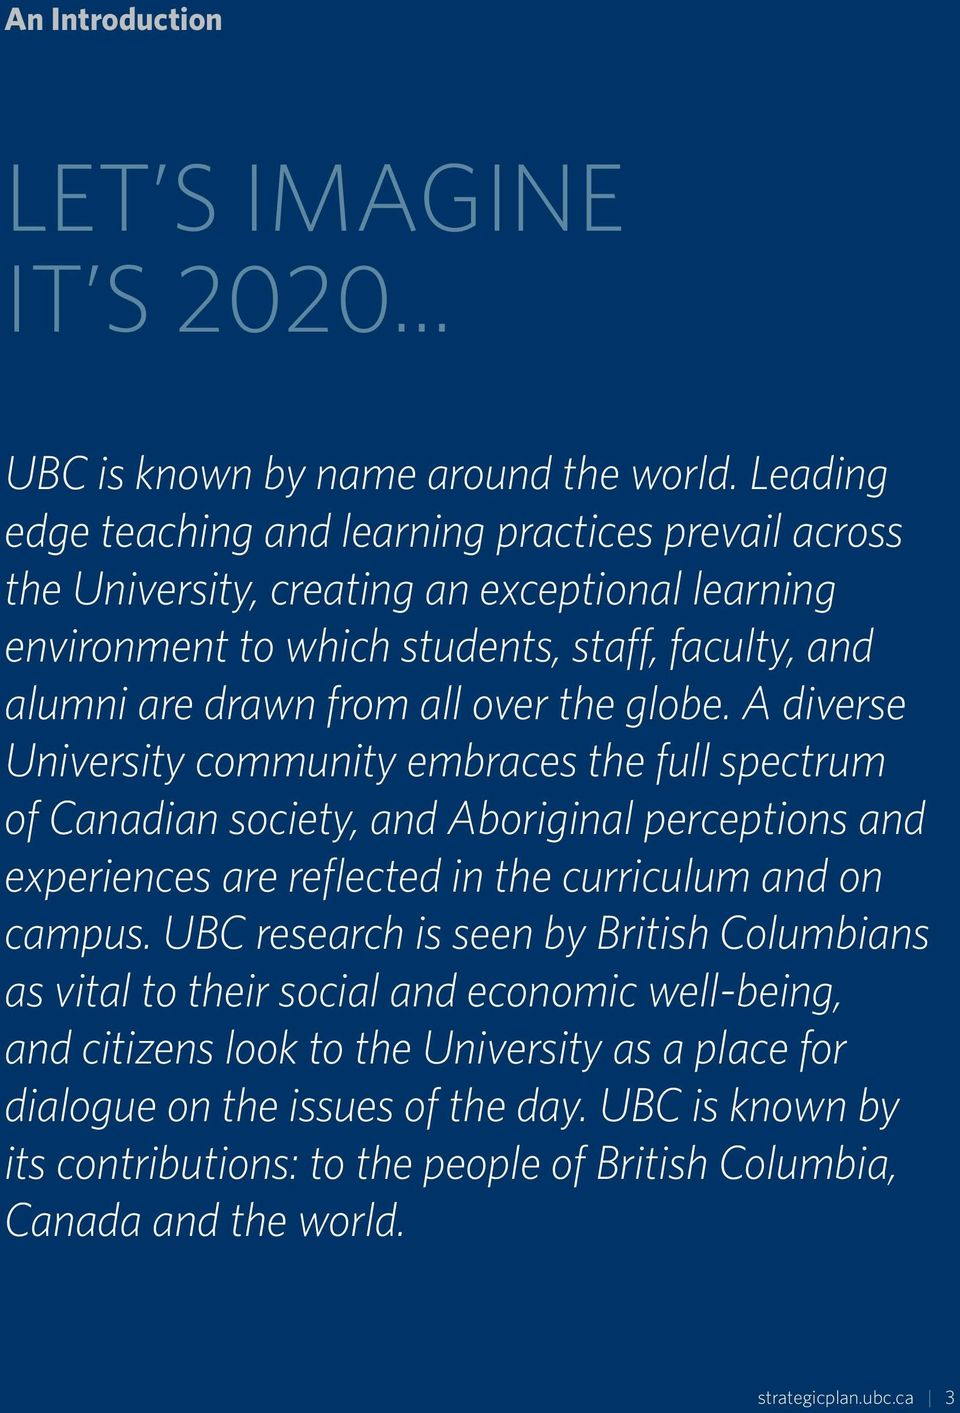 over the globe. A diverse University community embraces the full spectrum of Canadian society, and Aboriginal perceptions and experiences are reflected in the curriculum and on campus.